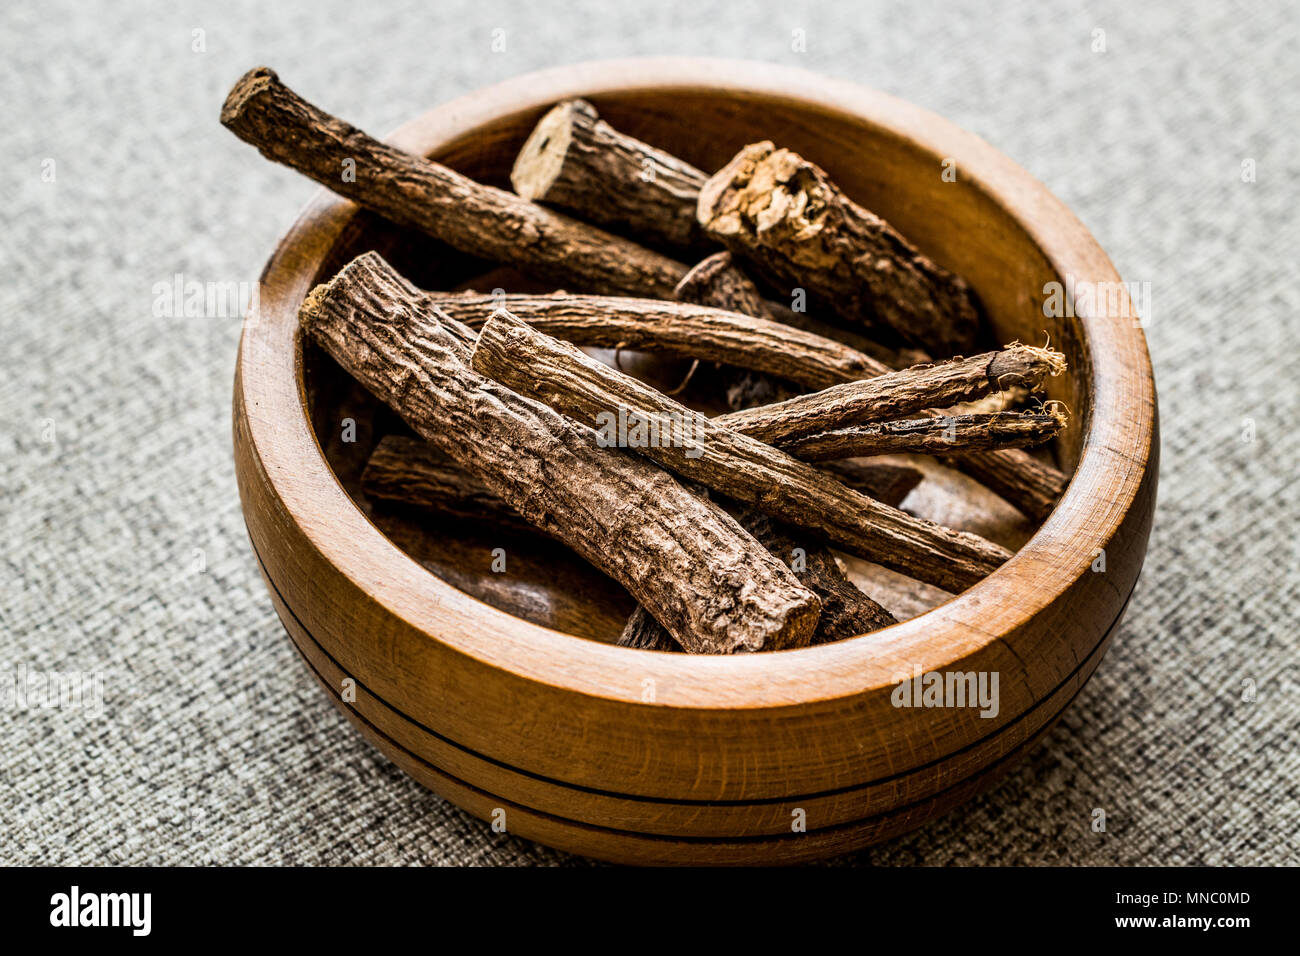 Dried Licorice Sticks in wooden bowl / Meyan Koku. Organic Concept. - Stock Image